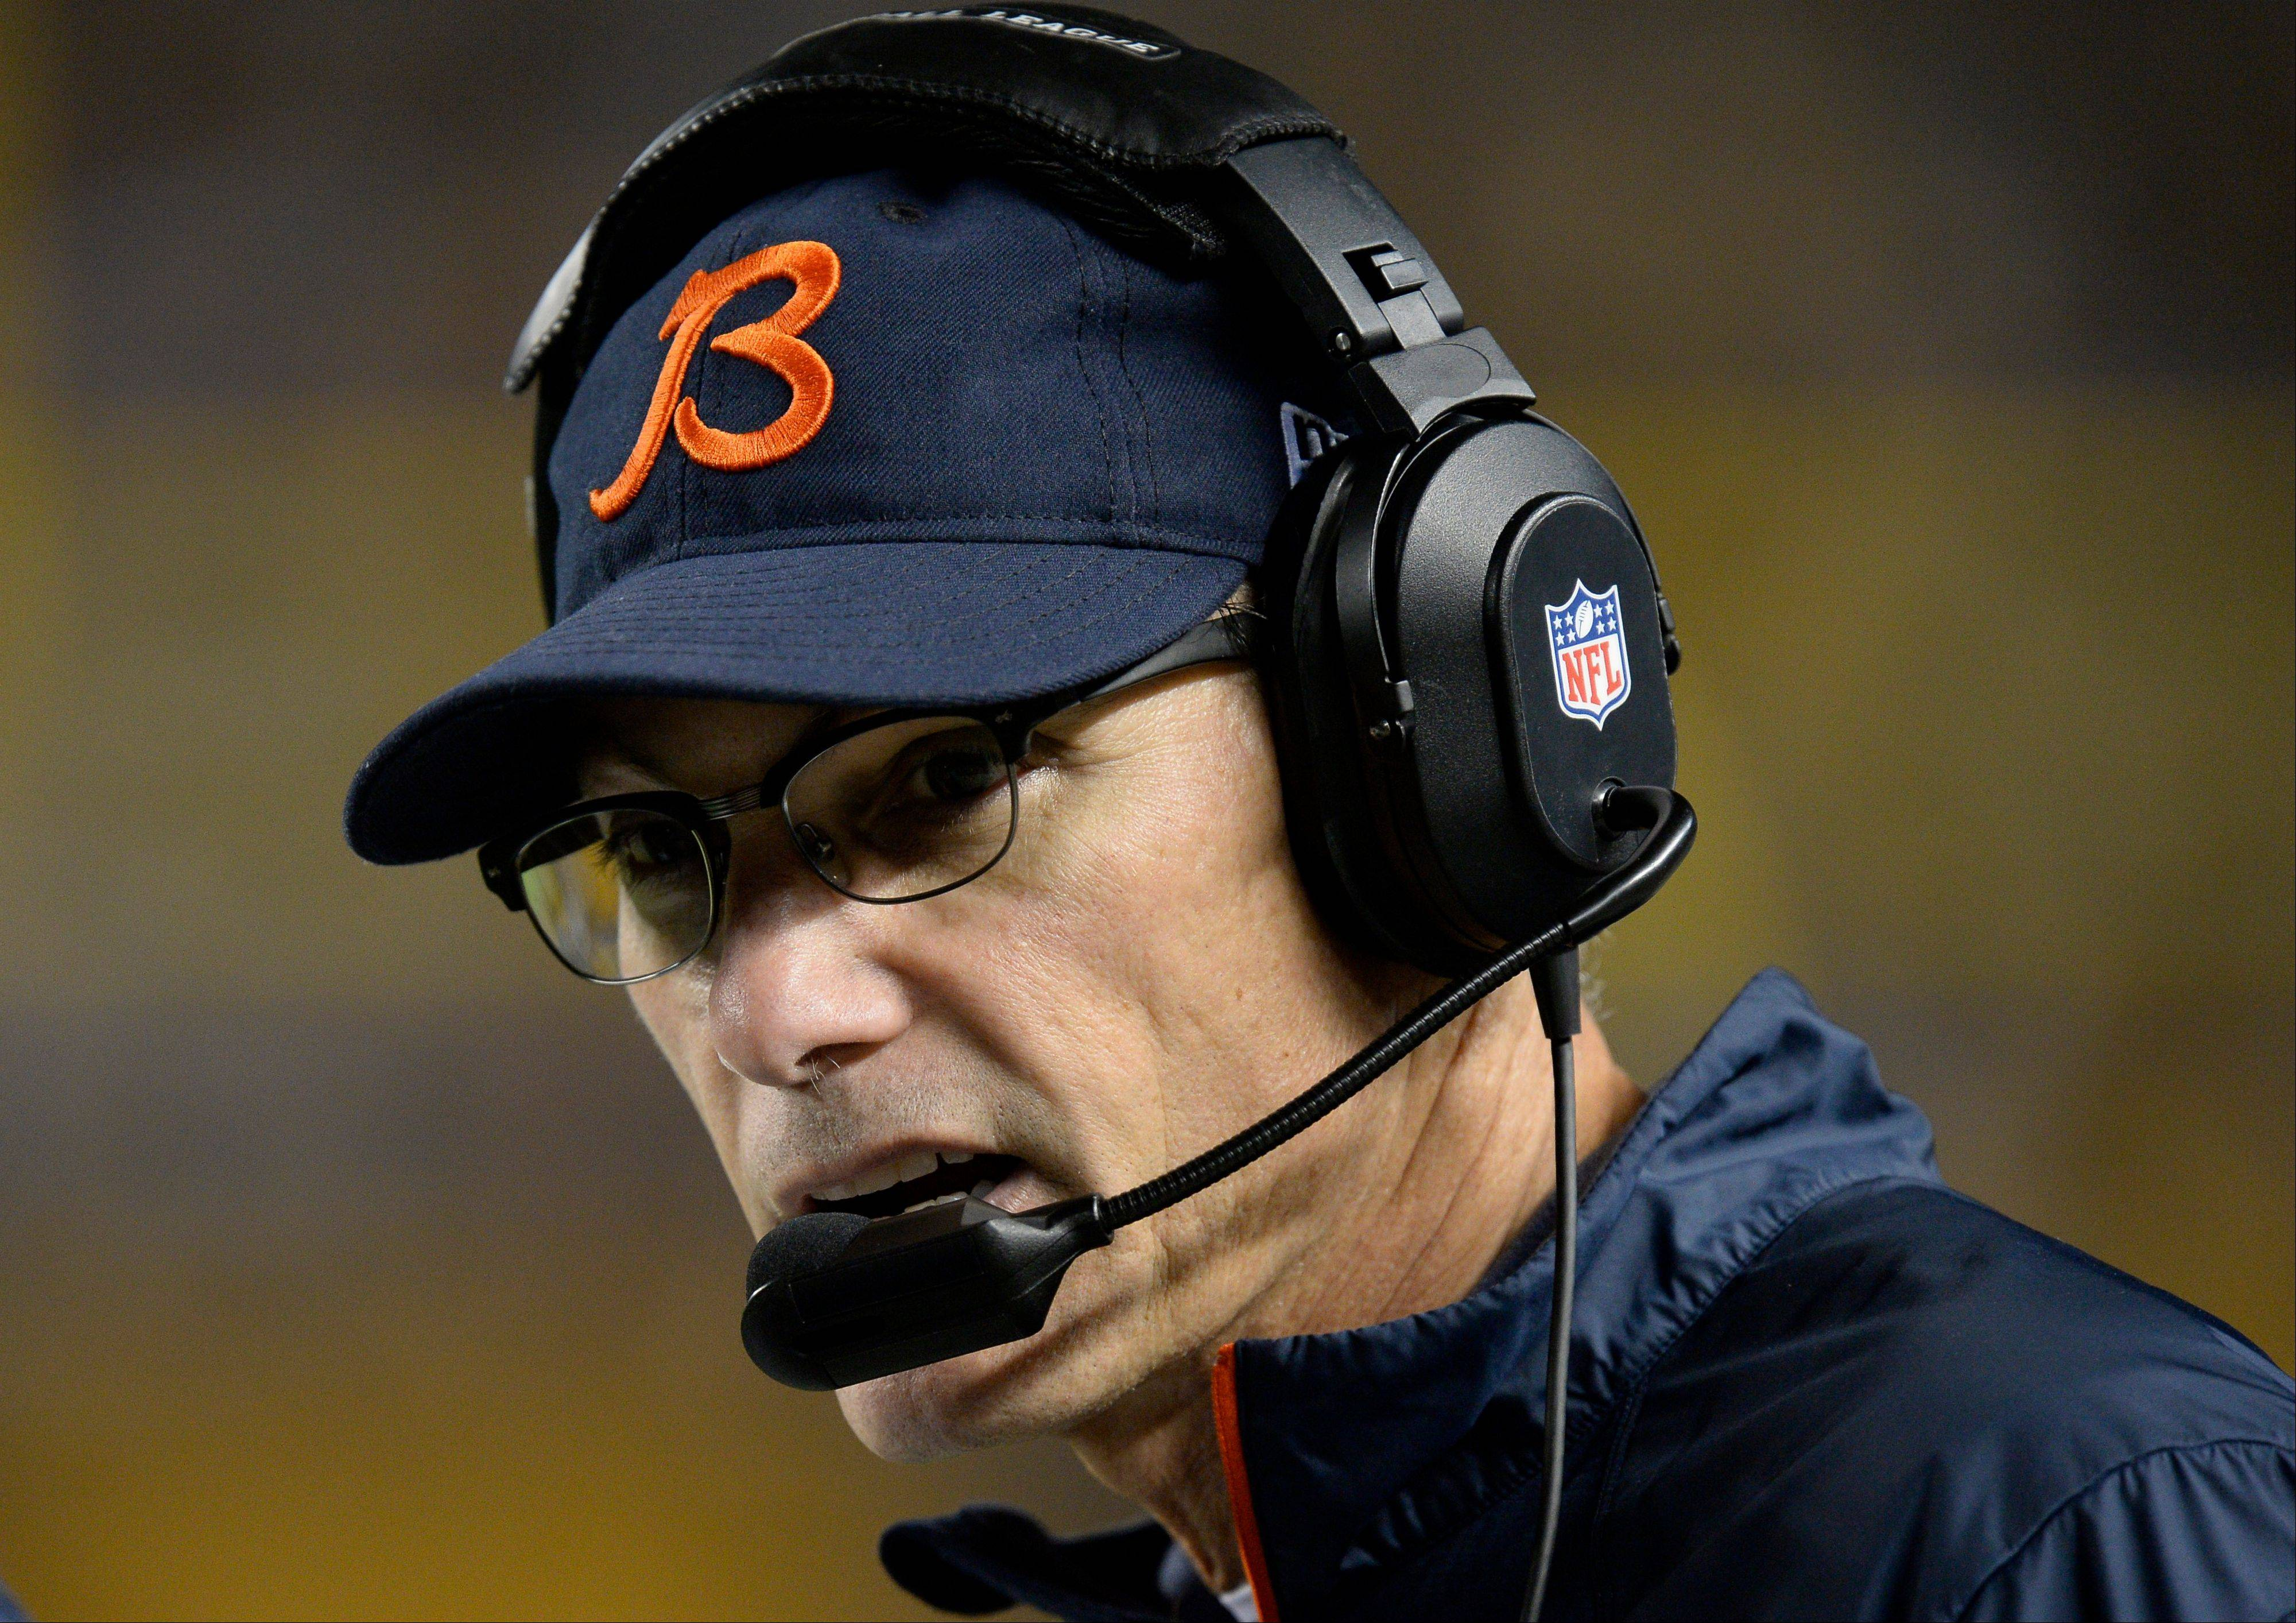 Chicago Bears head coach Marc Trestman on the sideline during the third quarter of an NFL football game against the Pittsburgh Steelers on Sunday, Sept. 22, 2013, in Pittsburgh. The Bears won 40-23.